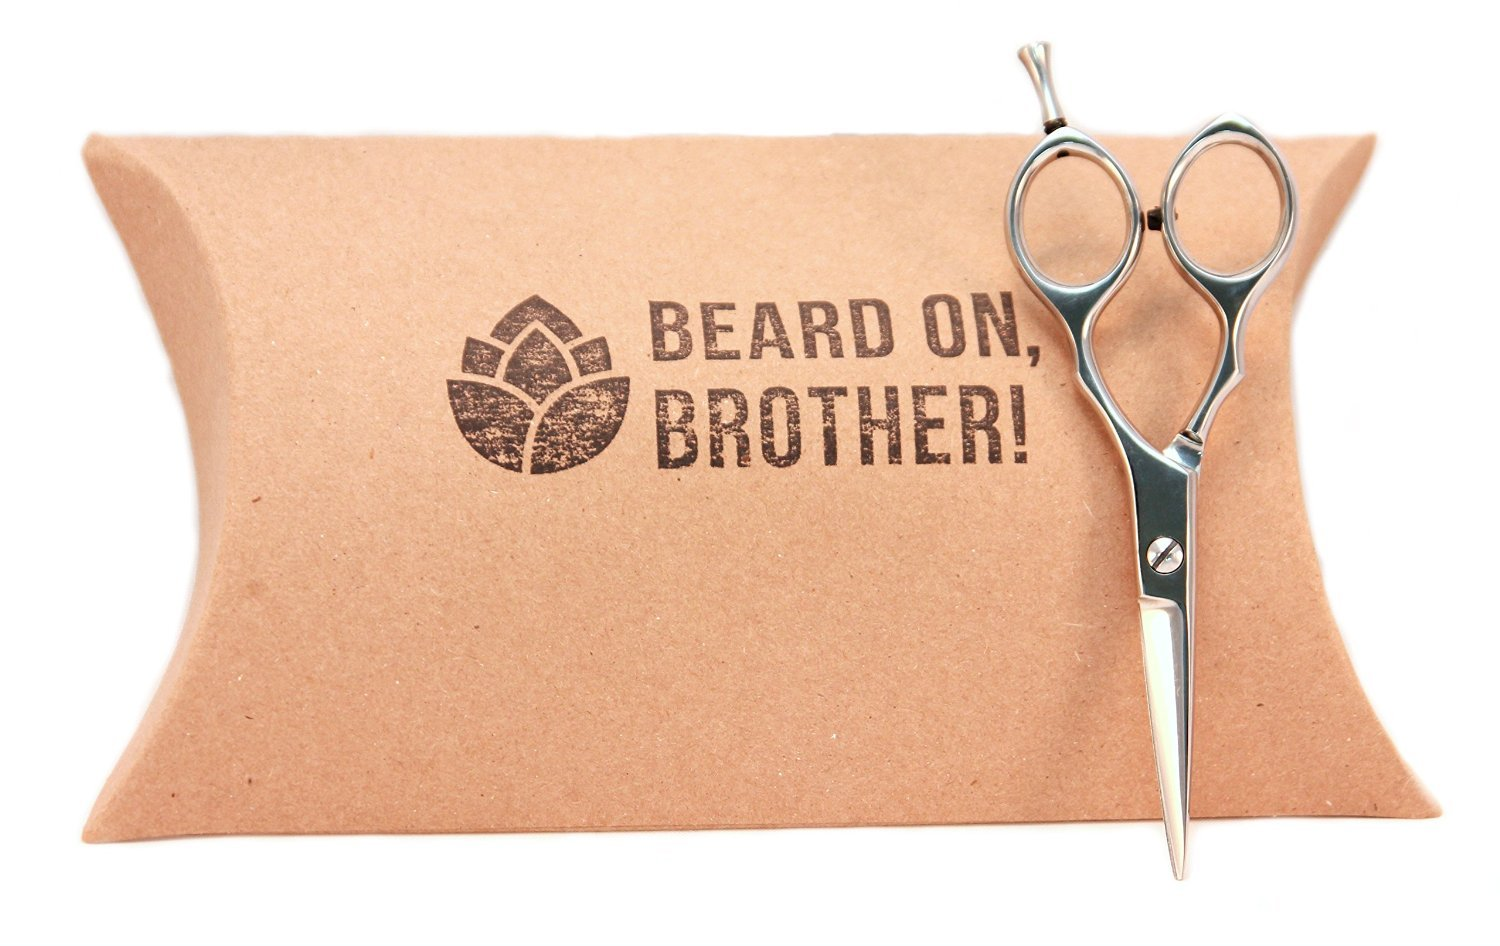 Professional Stainless Steel 5.5 Mens Mustache and Beard Grooming Scissors by Craft Beard | Ultimate Precision and Trimming Scissors to Target Individual Hairs | Included in our Beard Grooming Kits